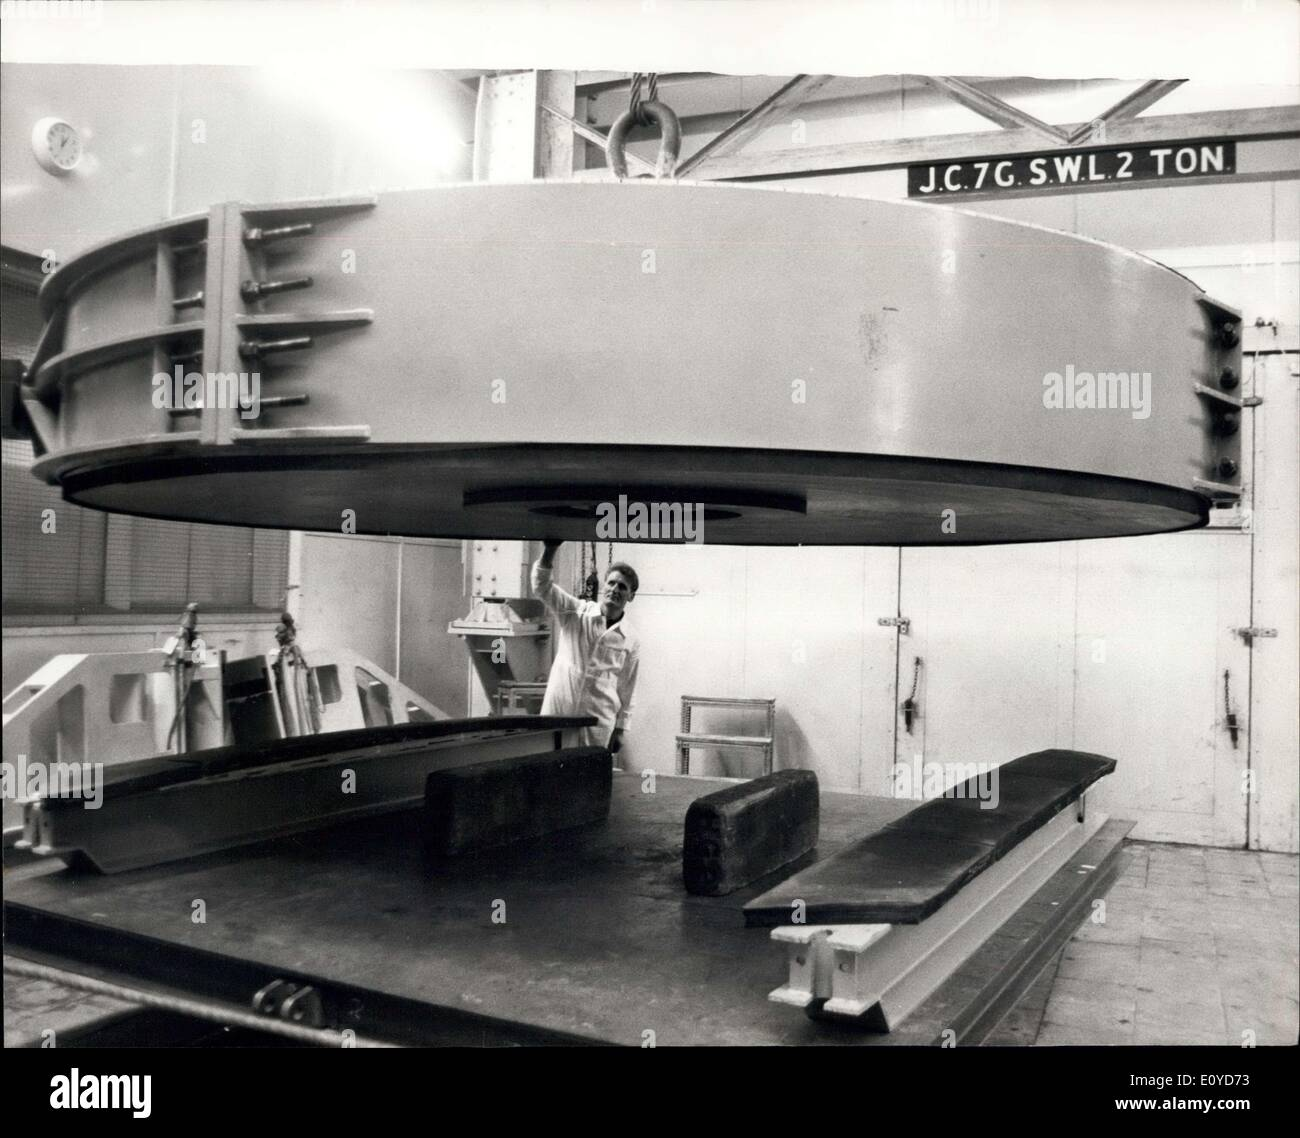 Dec. 10, 1969 - 20 Ton Telescope Mirror Worth Quarter Of A Million Arrives For Polishing In Newcastle: The largest piece of glass ever imported into the United Kingdom, a 20 ton telescope Mirror, has arrived at the Grubb Parsone Works at Newcastle Upon Tyne for an eighteen month grinding and polishing operation. The new 155.5 inch mirror made of a zero-expansion glass-ceramic material called ''Cer Vit'' developed by Owens Illinois U.S.A. was cast in Toledo, Ohio, in April this year - Stock Image